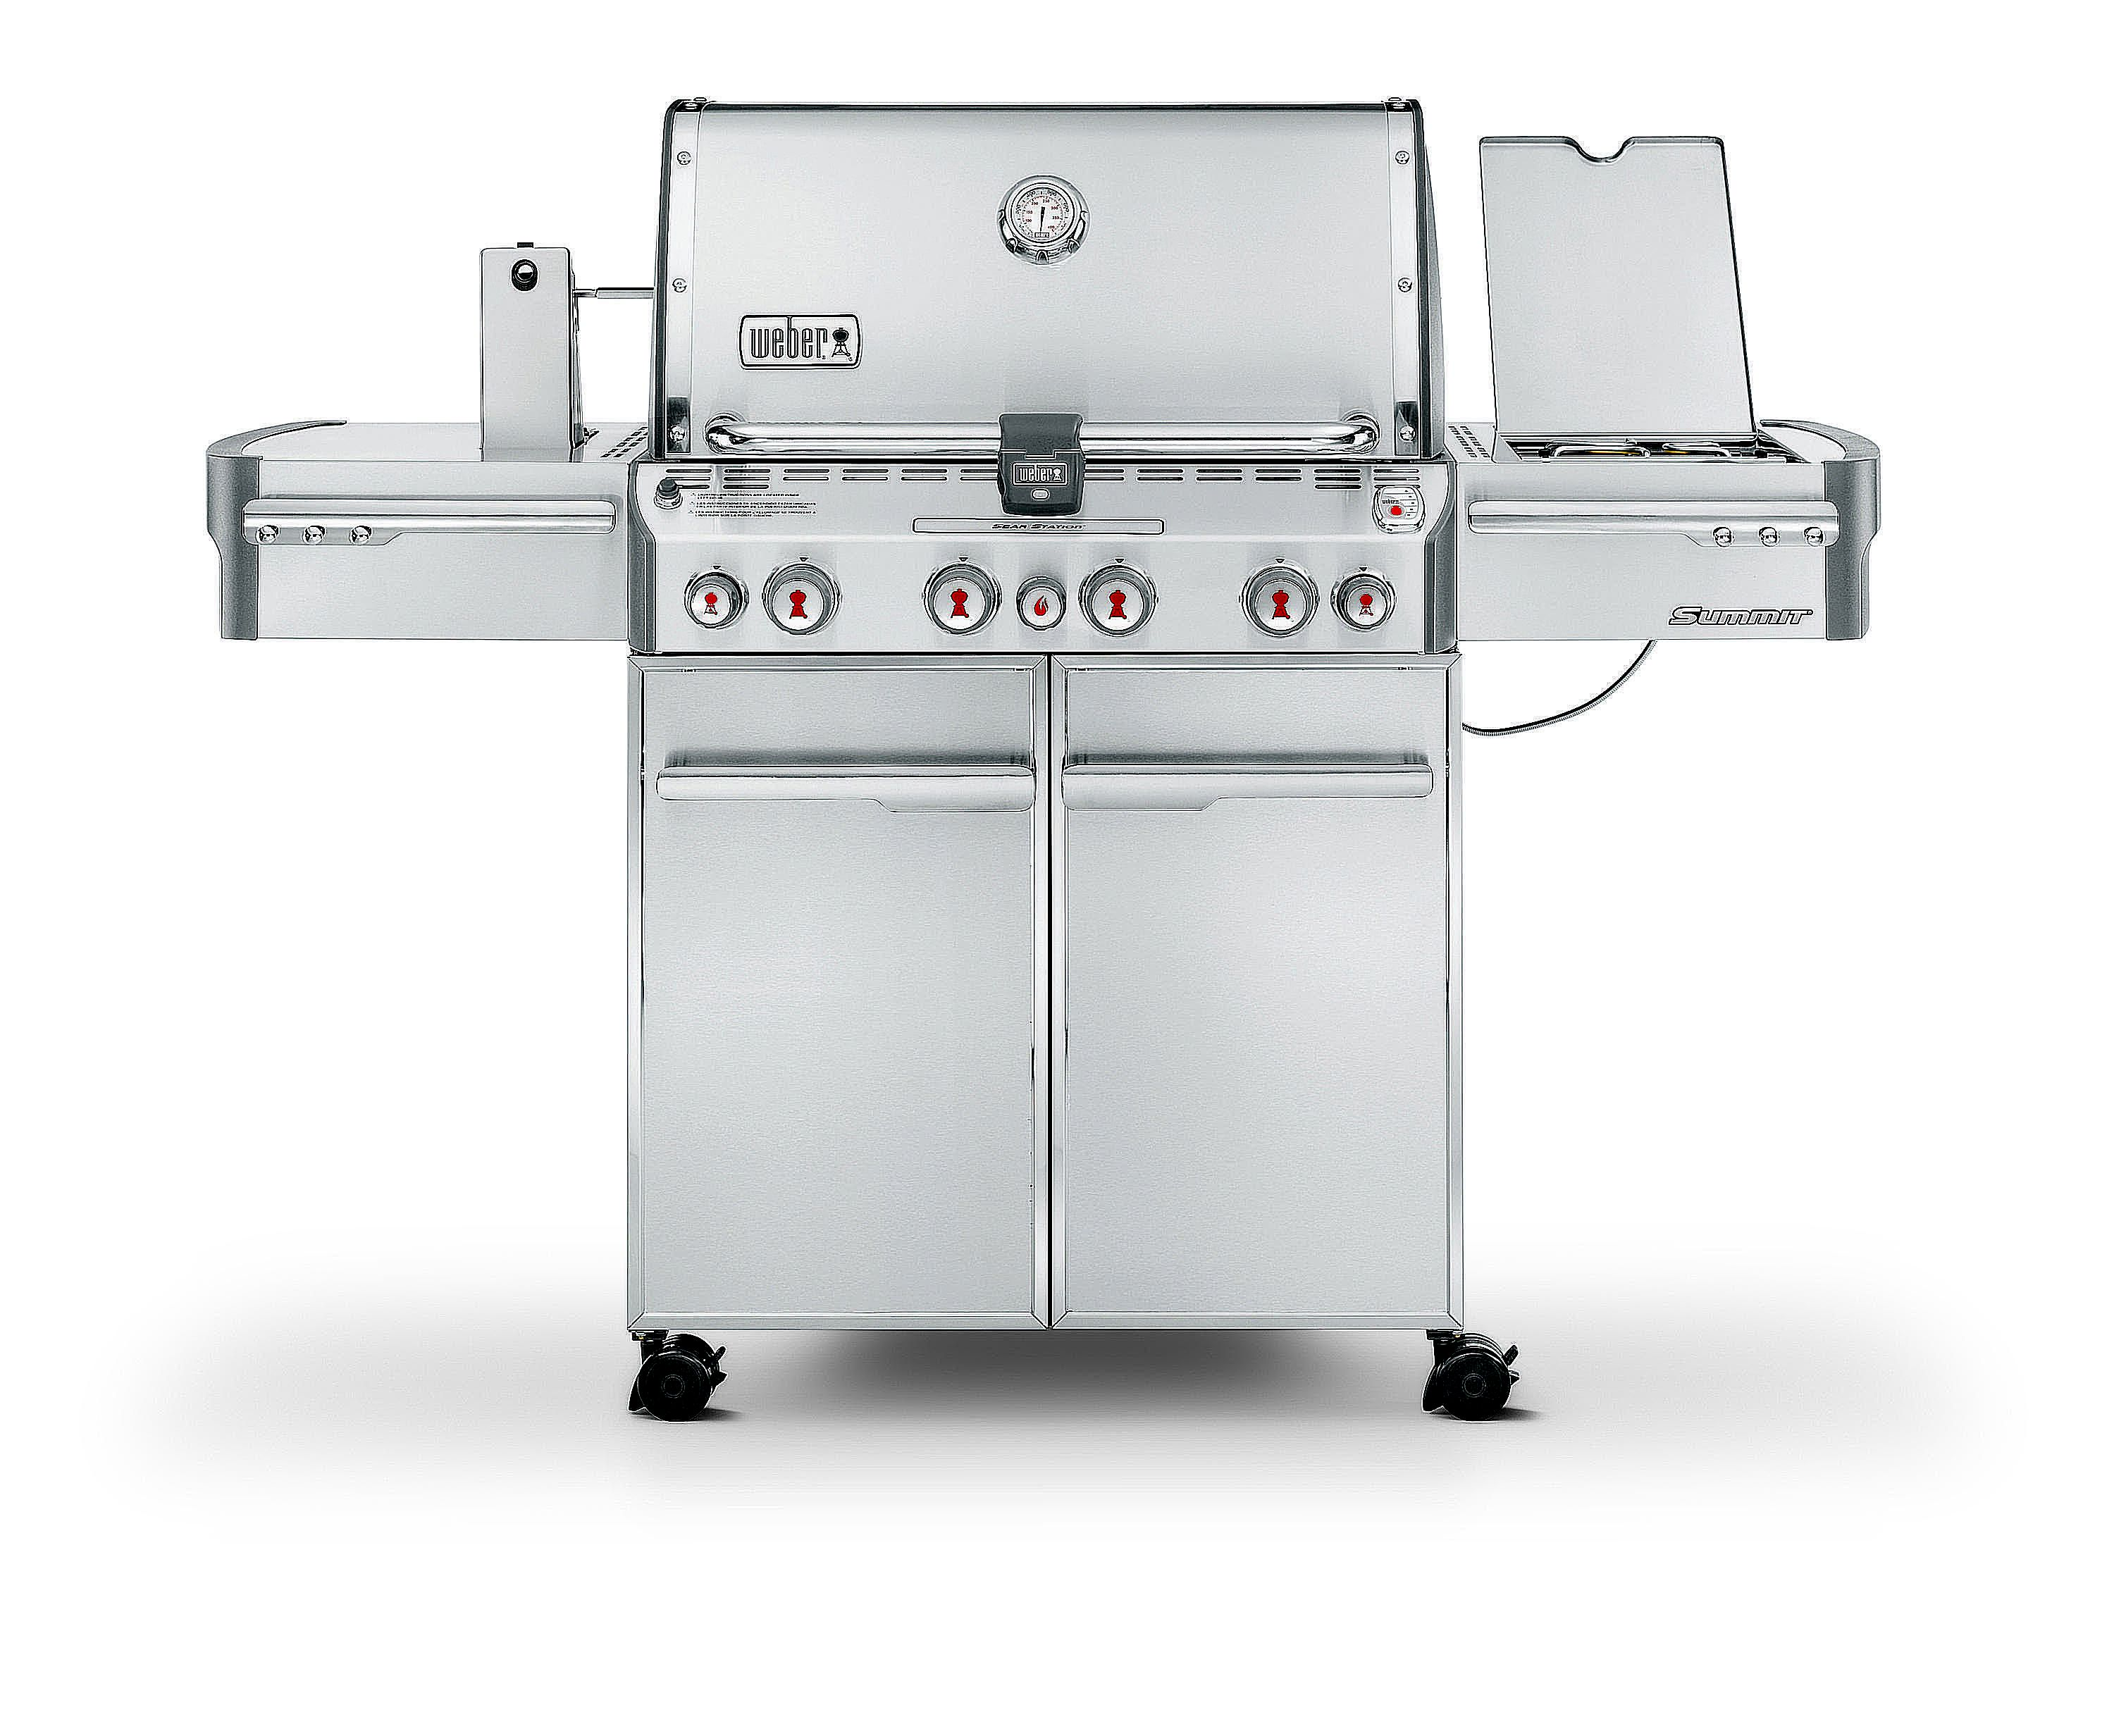 weber summit s 470 gas grill review